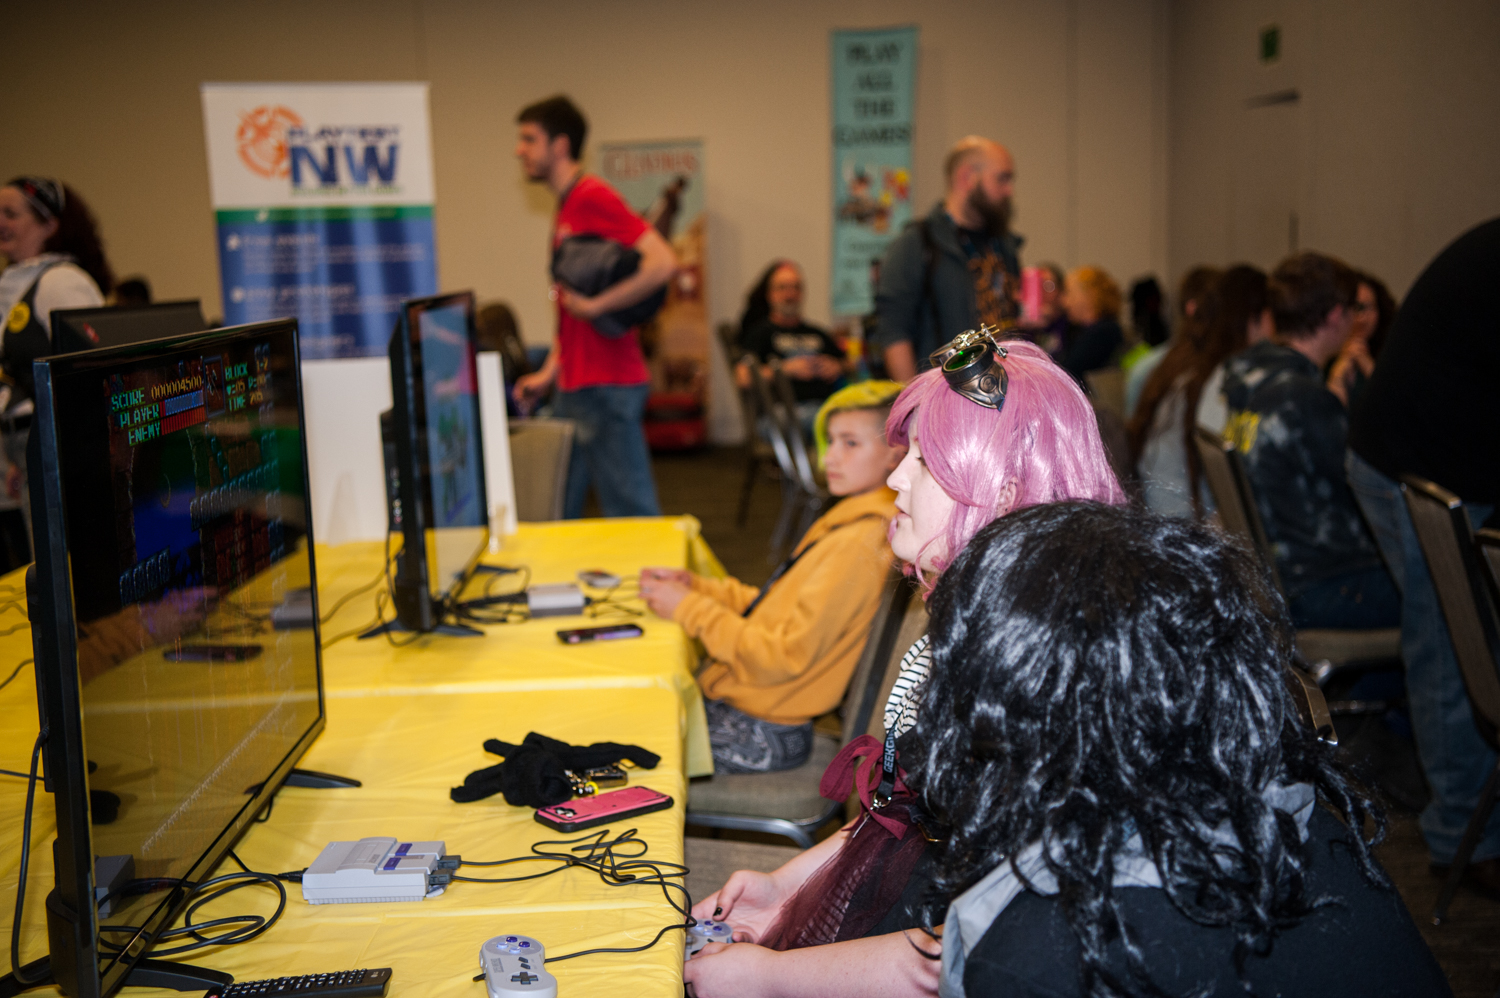 More than 12,000 people celebrated GeekGirlCon in downtown Seattle at the Conference Center this past weekend, an event dedicated to empowering women, girls, and non-binary geeks to pursue their passions — whether they love science and technology, comics, literature, gaming, or anything else. GGC believes everybody is a geek at heart, in one way or another, and we need to ensure all these geeks are supported, welcomed, and encouraged to pursue what they love. (Image: Elizabeth Crook / Seattle Refined)